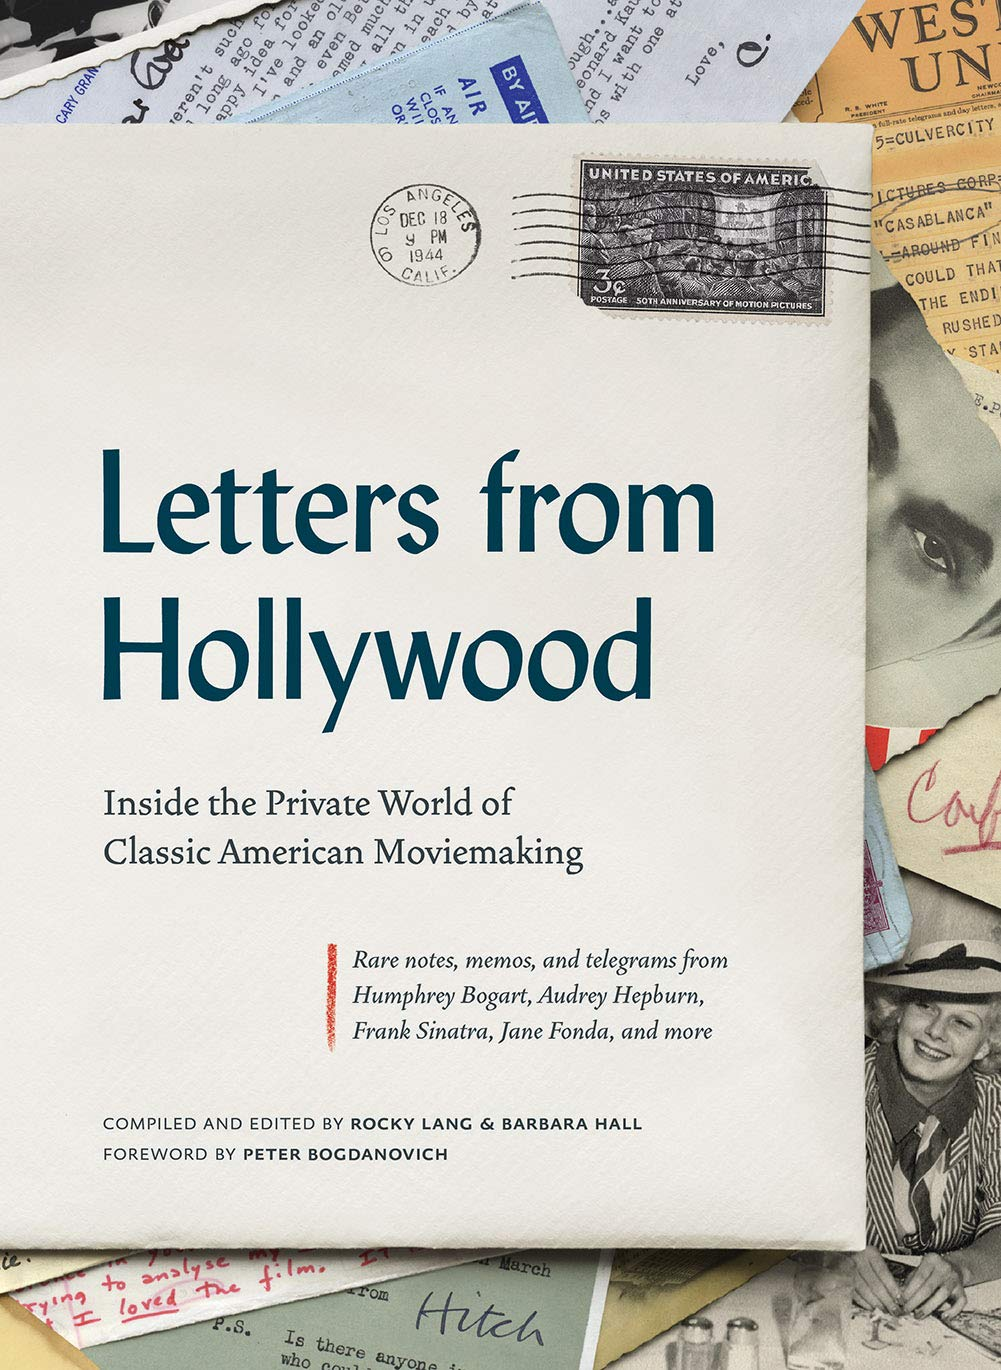 Letters from Hollywood: Inside the Private World of Classic American Moviemaking by Abrams